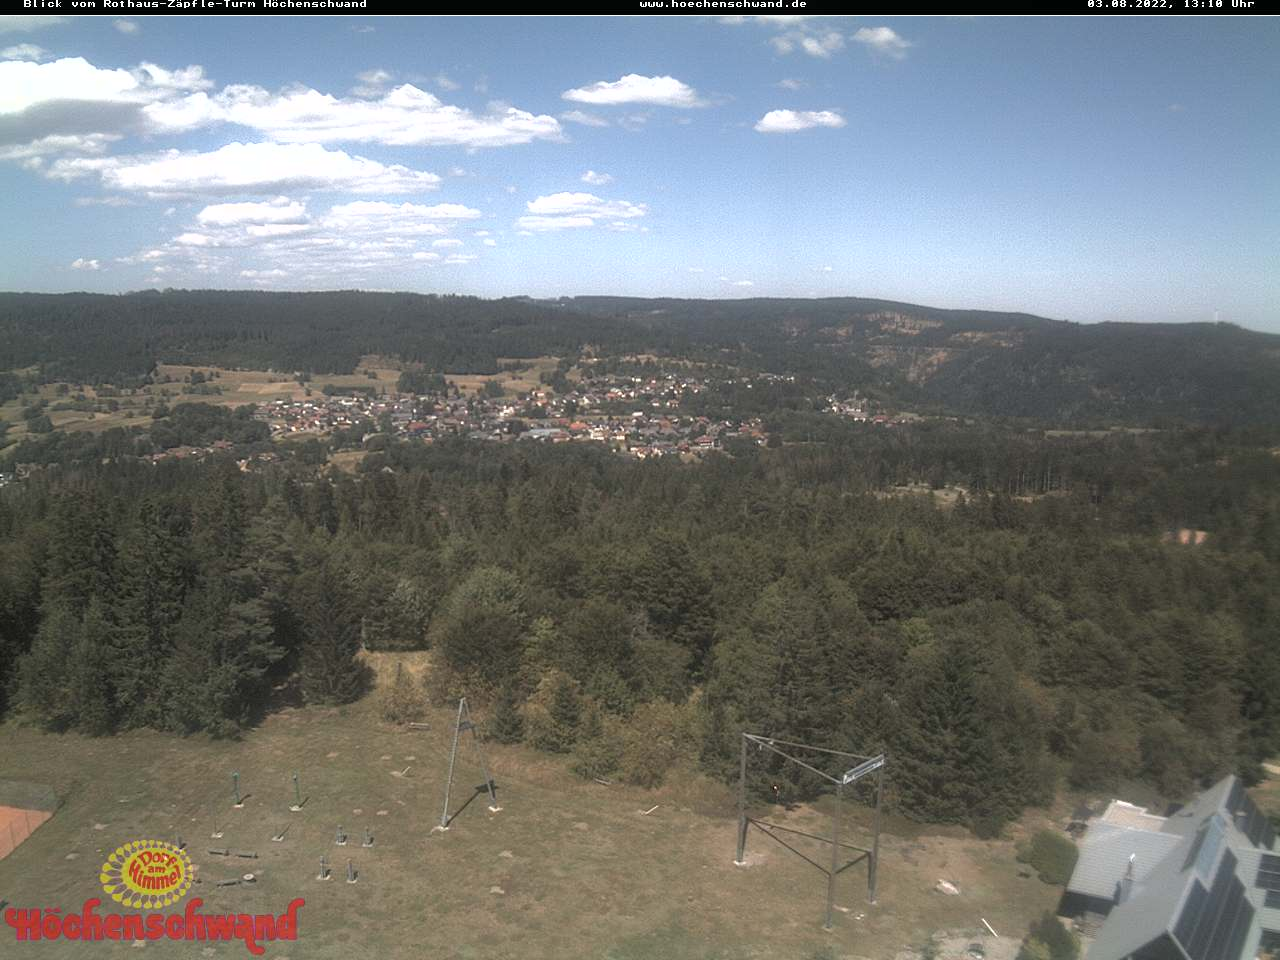 Live Bilder der TeamWelt Webcam